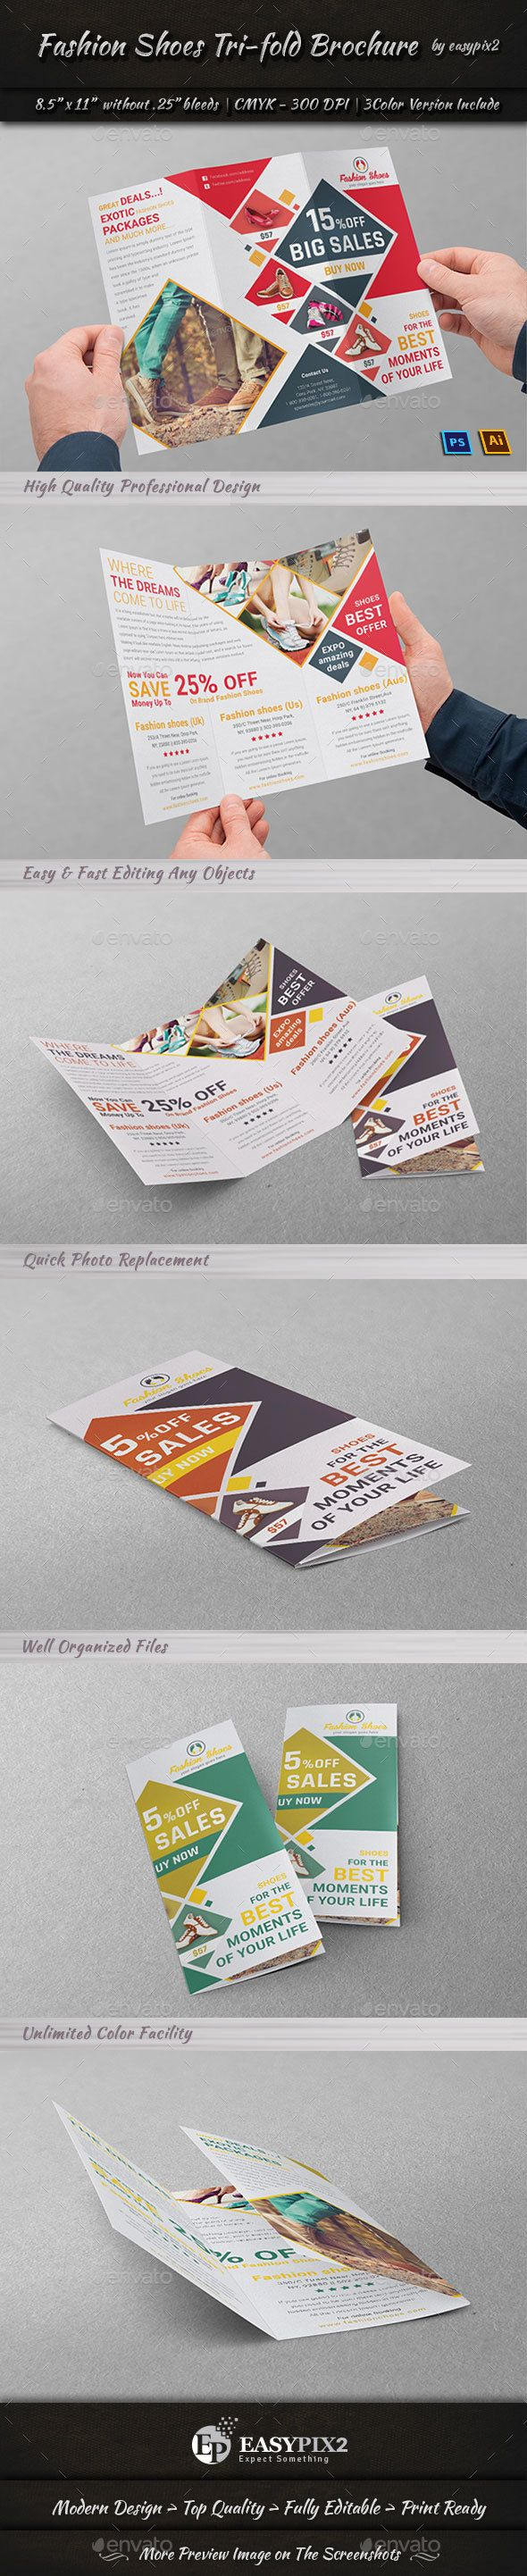 Fashion Shoes Tri-fold Brochure Template PSD, Vector EPS, AI Illustrator, TIFF Image. Download here: http://graphicriver.net/item/fashion-shoes-trifold-brochure/16658309?ref=ksioks